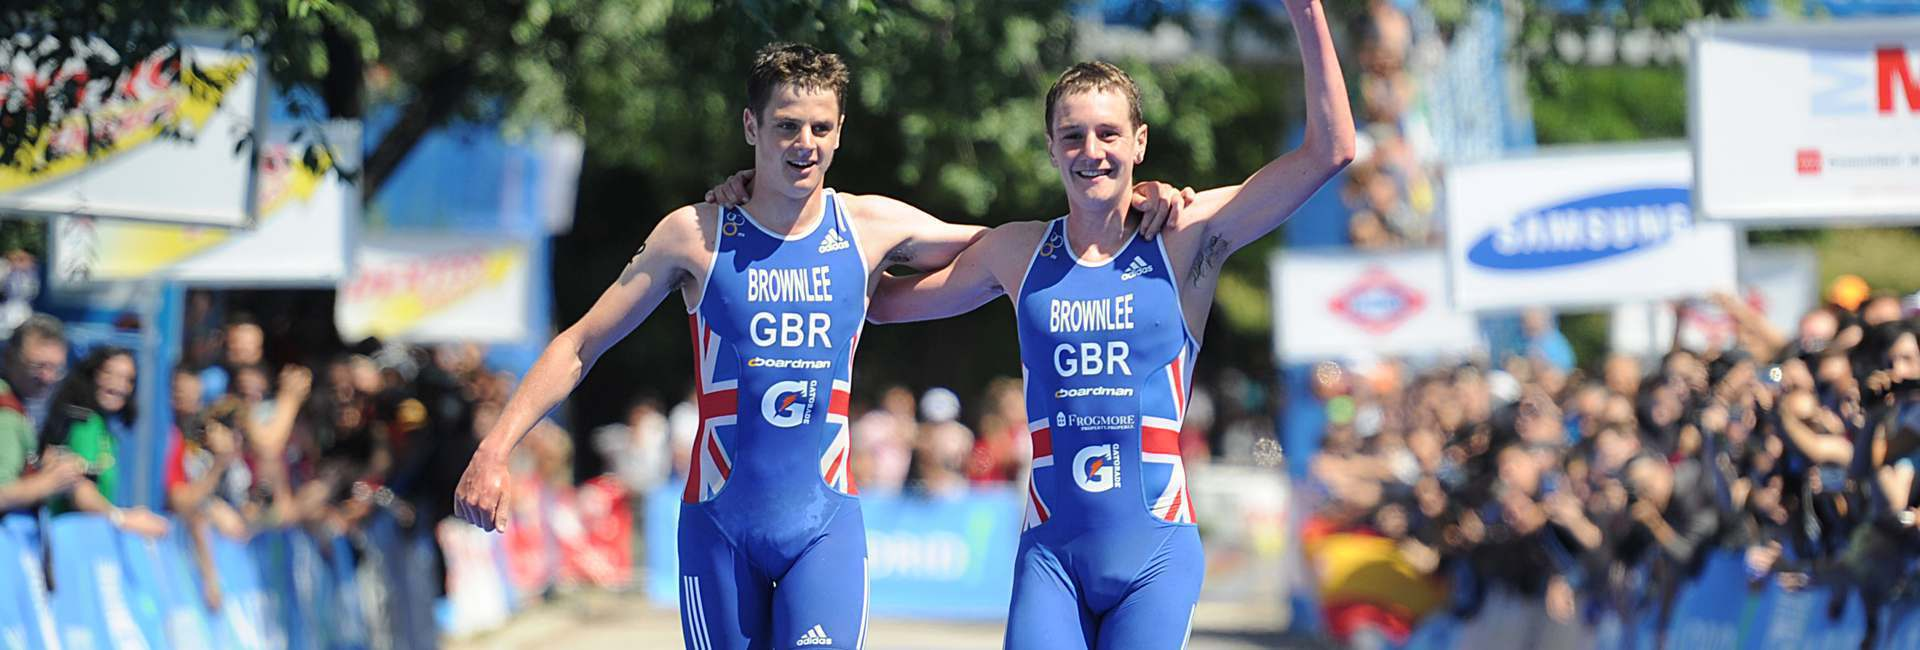 The Brownlee brothers celebrate a double finish.